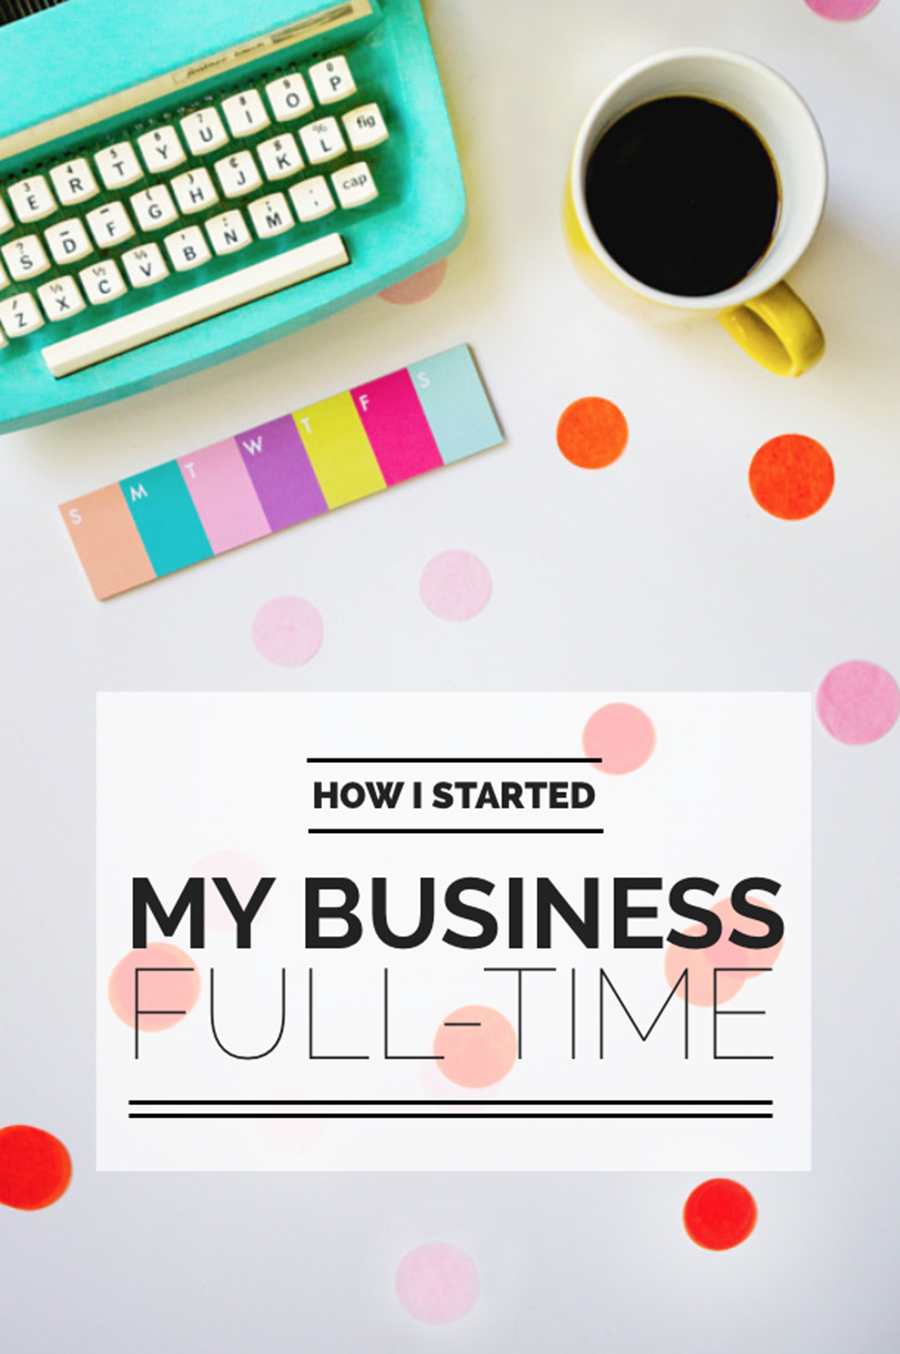 How I Started My Business (Full-Time!) | Exactly how I started working my photography business and online business full-time. | Wonderlass